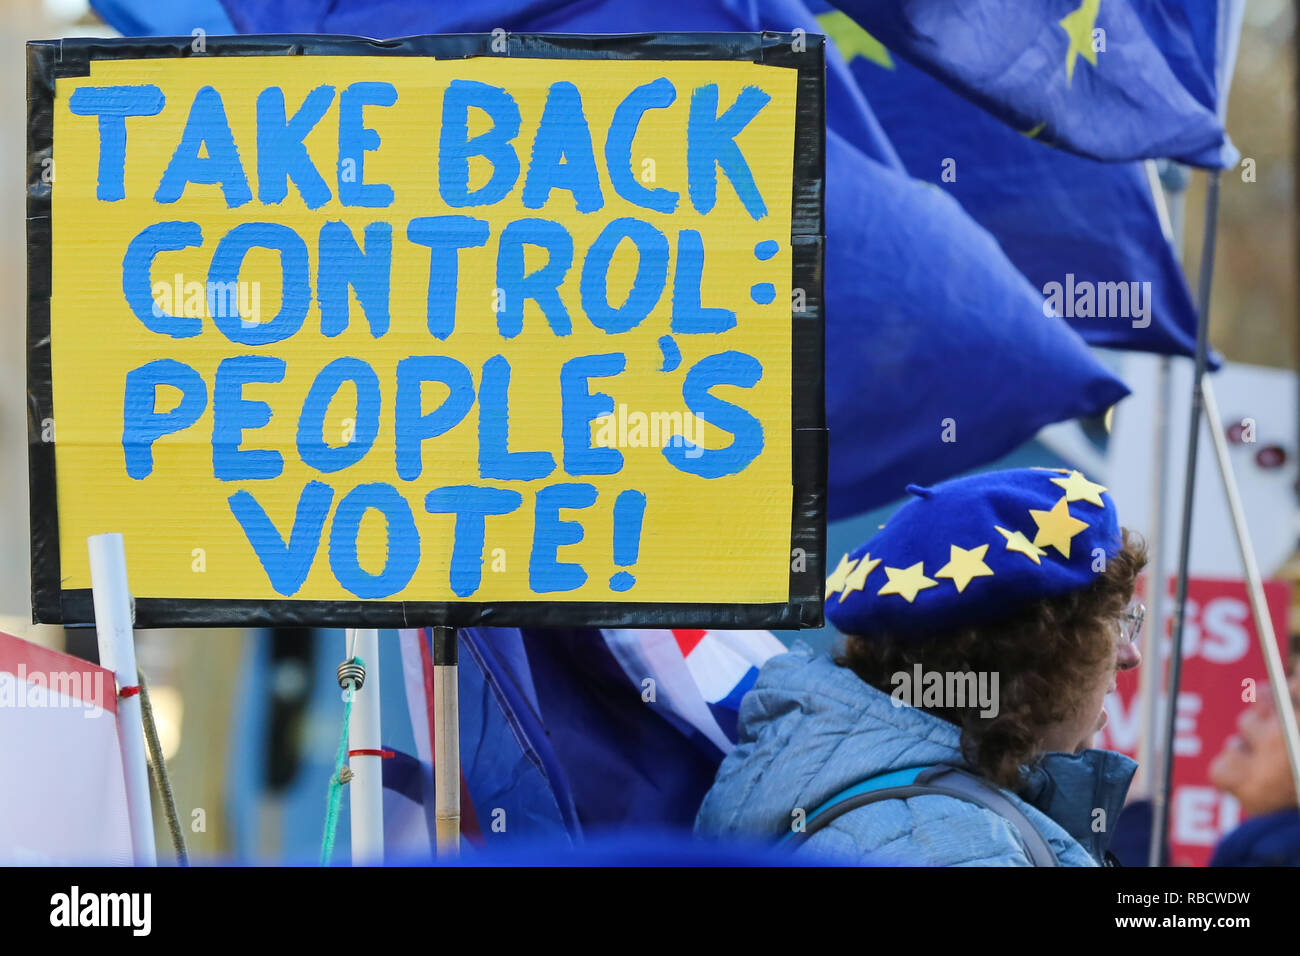 A placard saying take back control peoples vote seen during the protest. Anti Brexit demonstrators gather outside the British Parliament a week before the MPs to vote on the finalized Brexit deal, MPs will vote on Theresa May's Brexit deal on Tuesday, 15 January.' - Stock Image